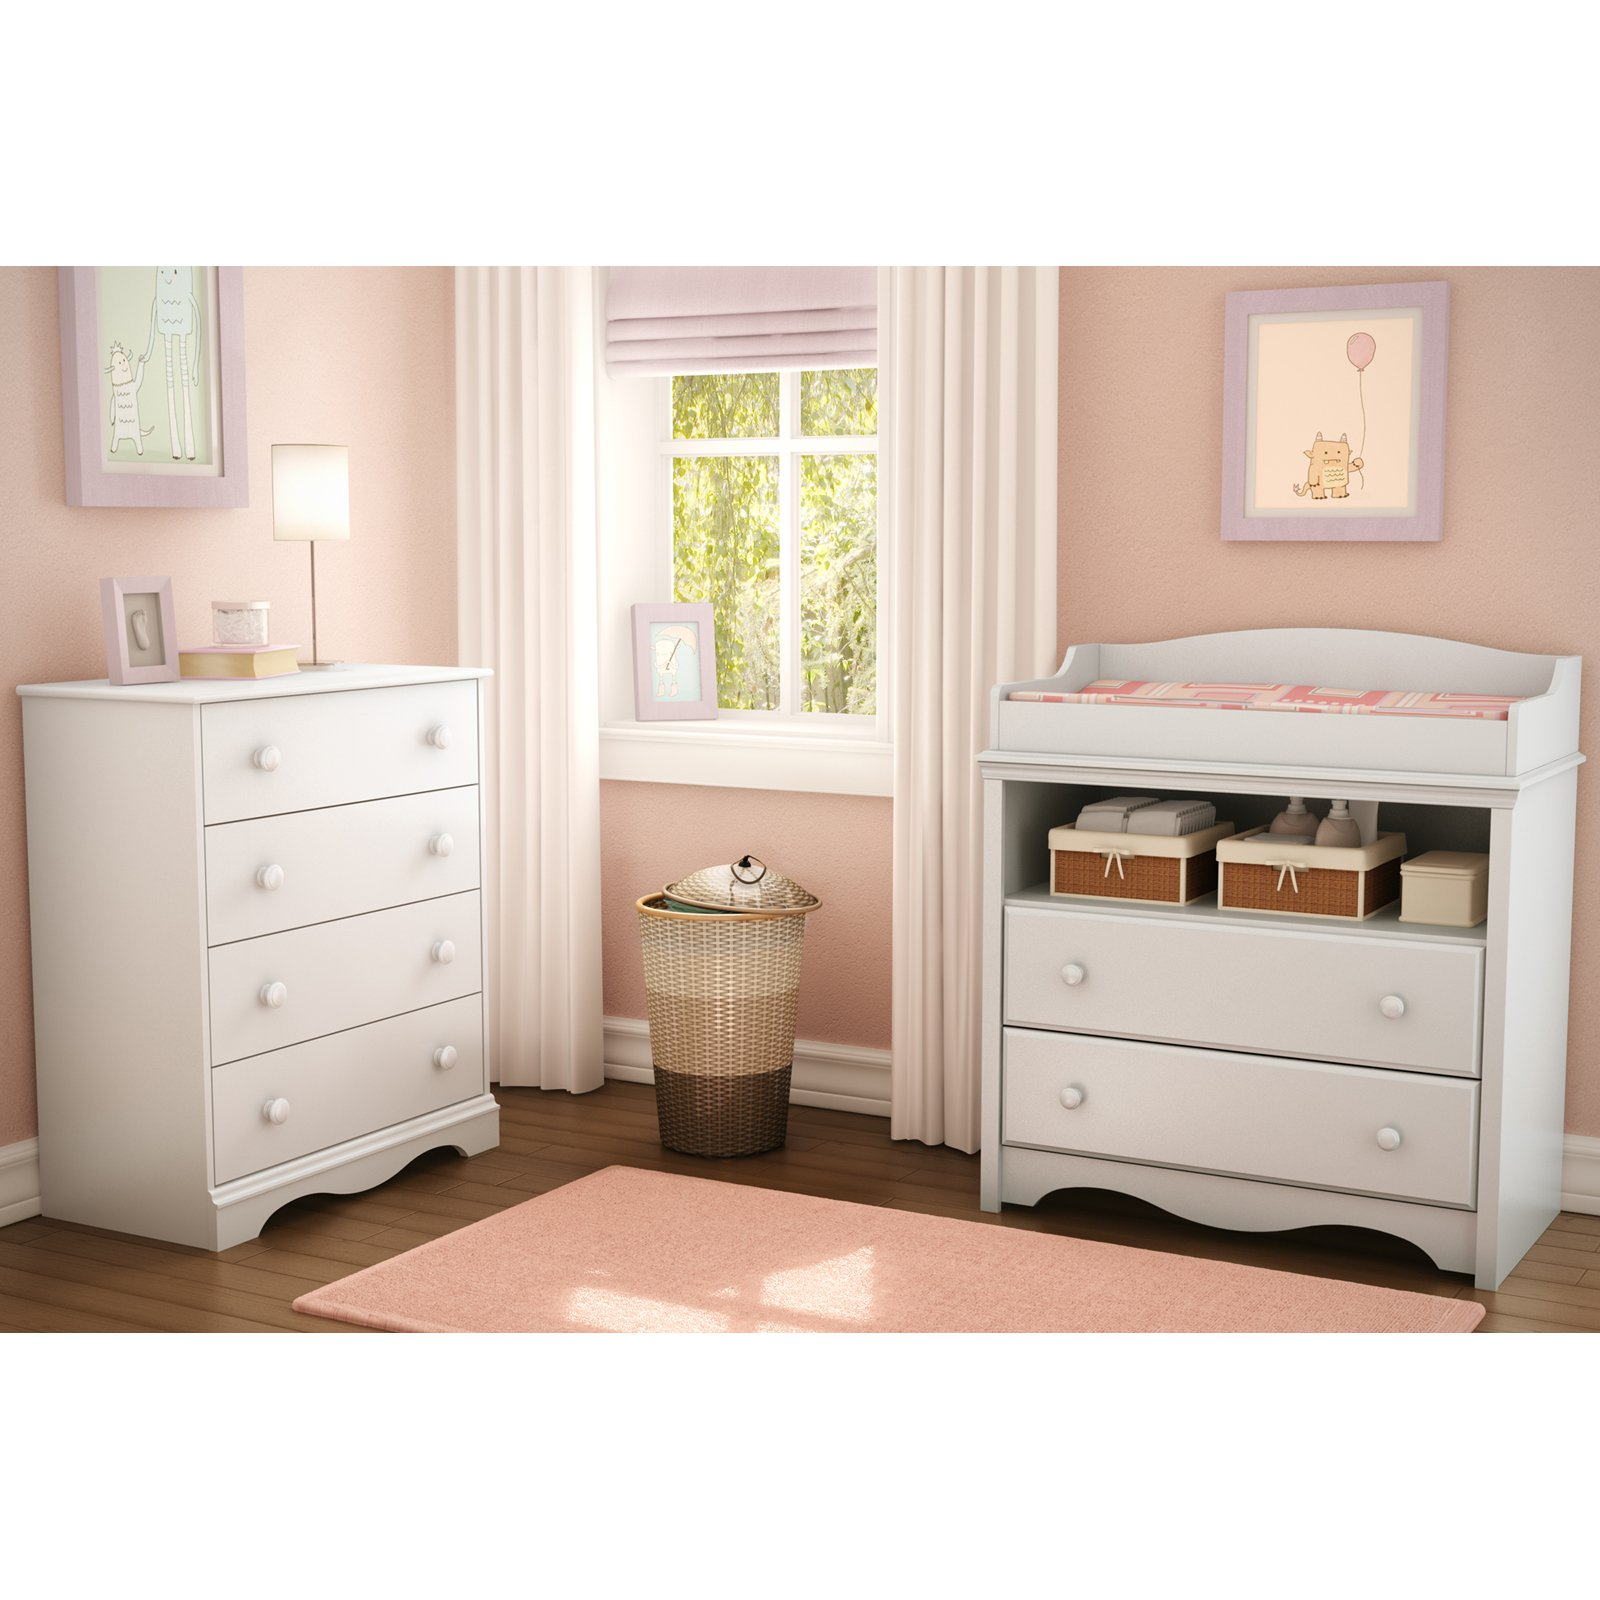 South Shore Heavenly Changing Table and 4 Drawer Chest Set by South Shore